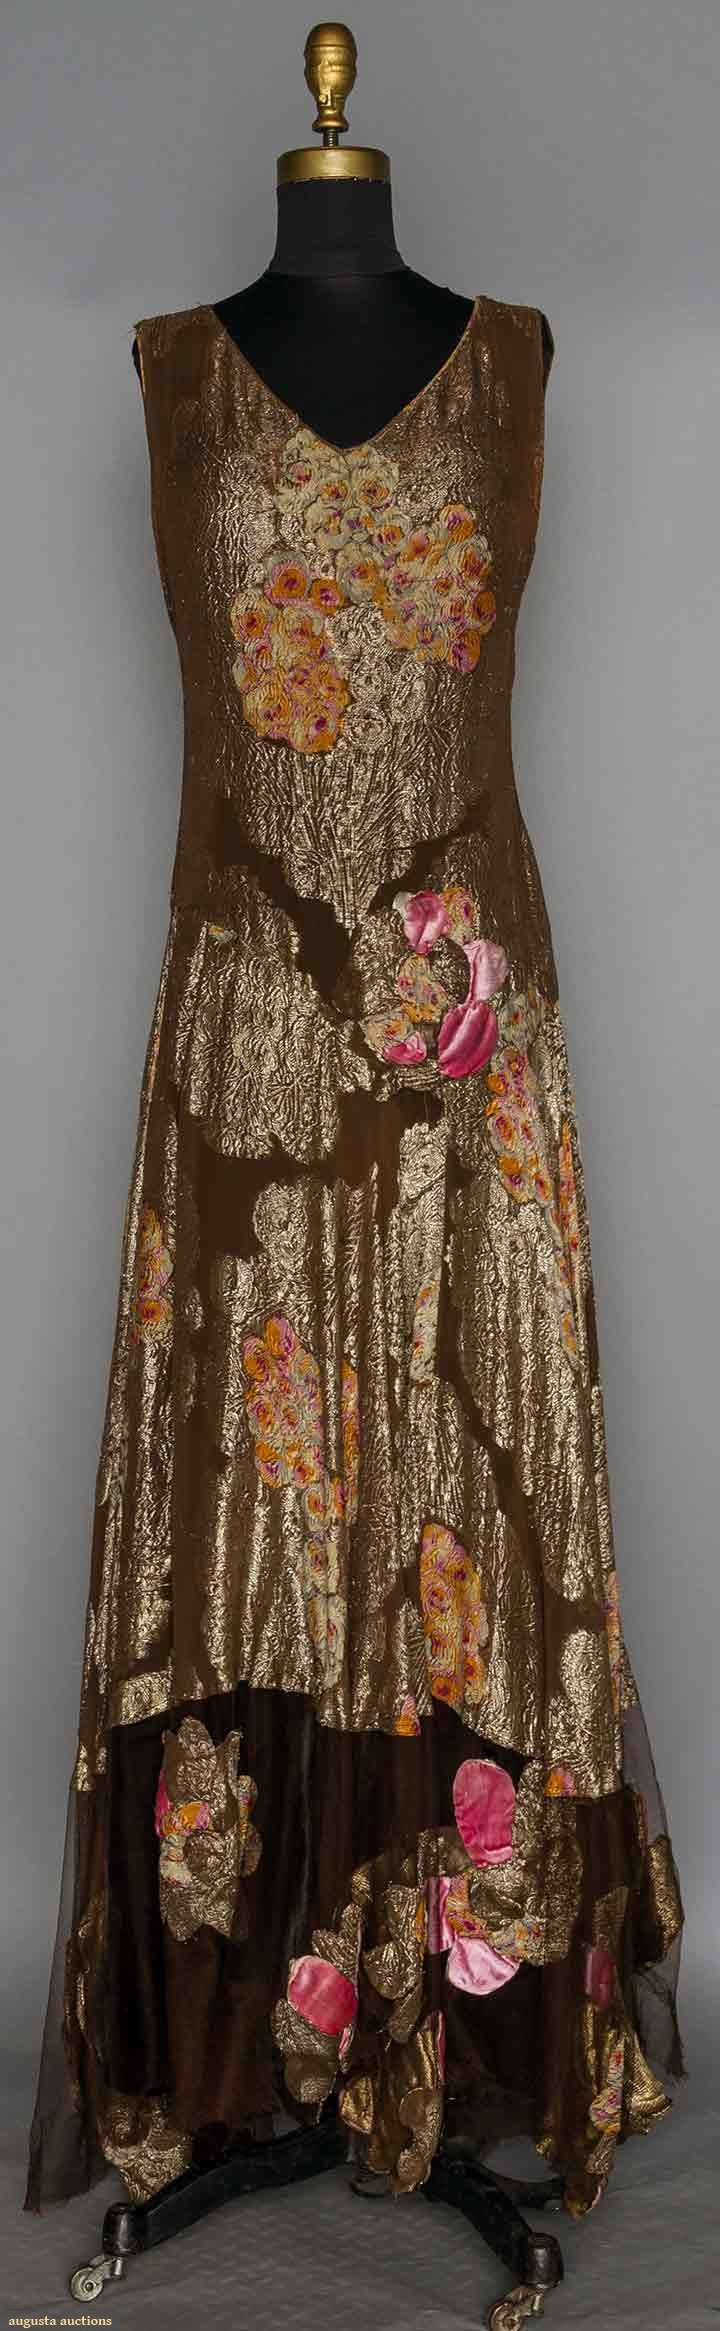 Printed Gold Lame Gown, 1930s, Augusta Auctions - Up for auction November 11, 2015 NYC long dress evening formal bronze brown pink silk